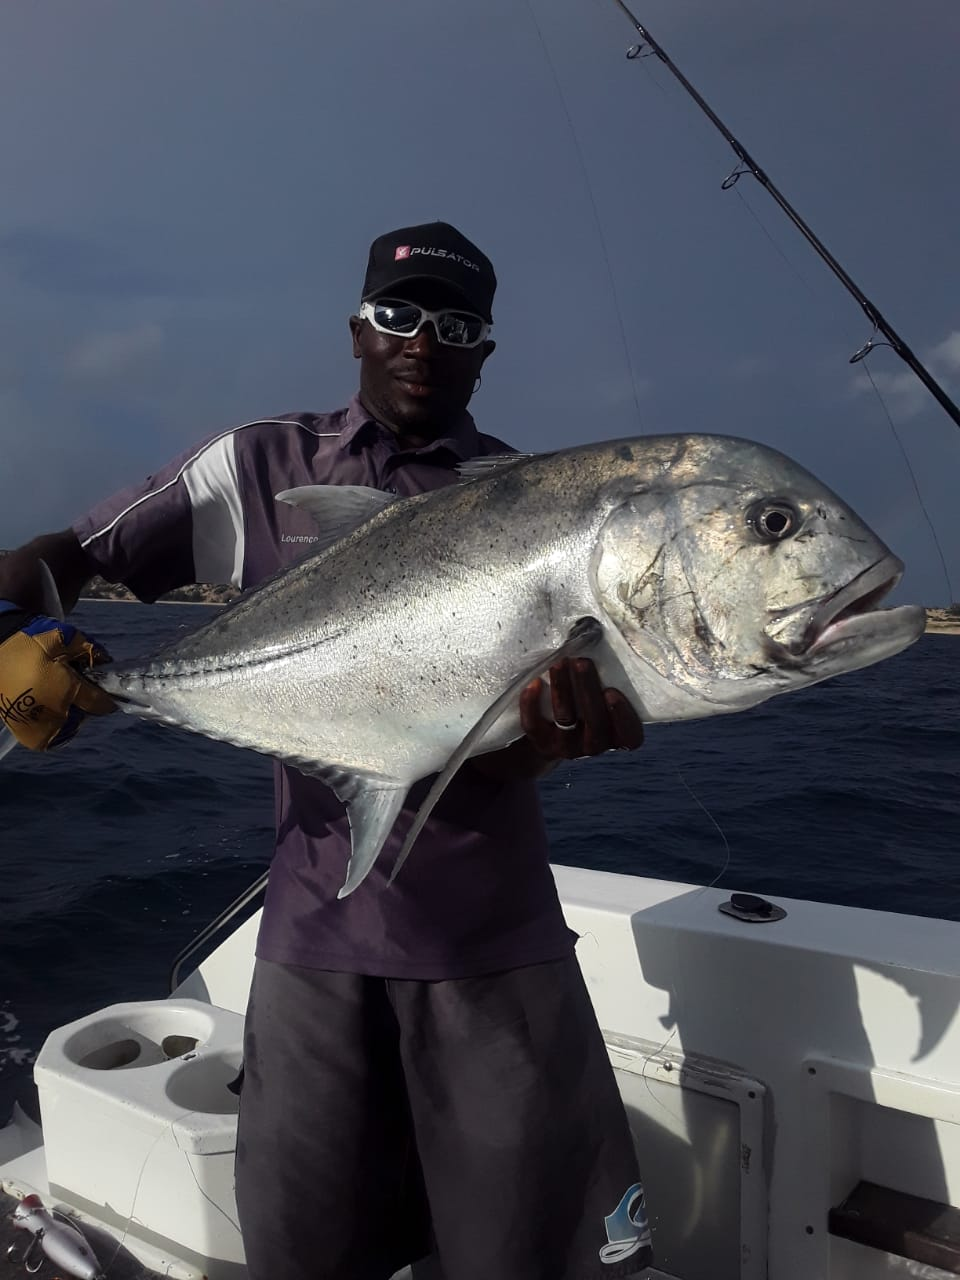 Mozambique GT´s popping and jigging - Straight after, we had another popping charter on Vamizi and the GT bite was really good and even the boys got to pull in a few fish. Here is deckhand Lourenco with yet another GT caught at 9-mile reef